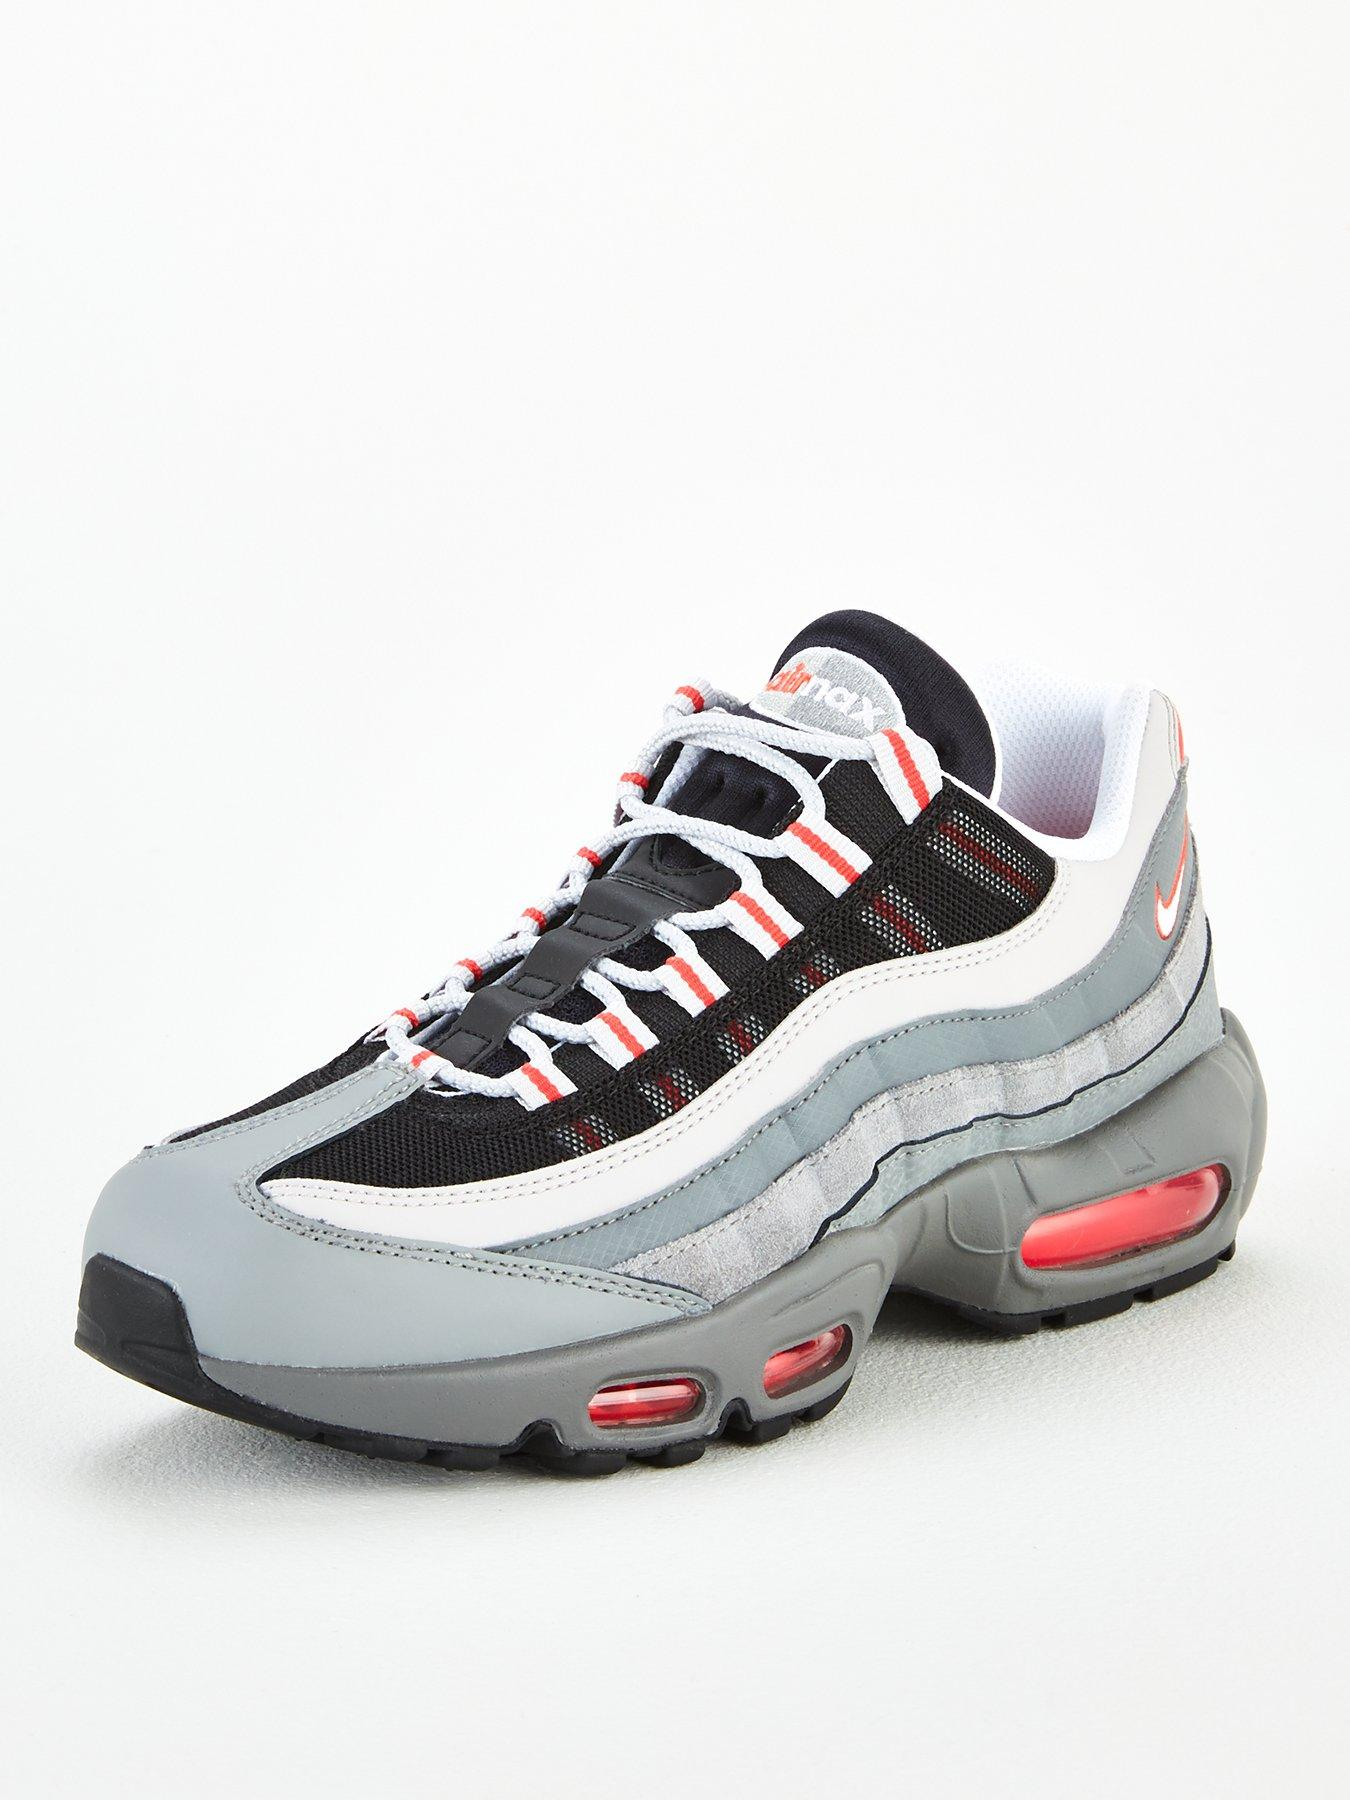 air max 95 grey and red